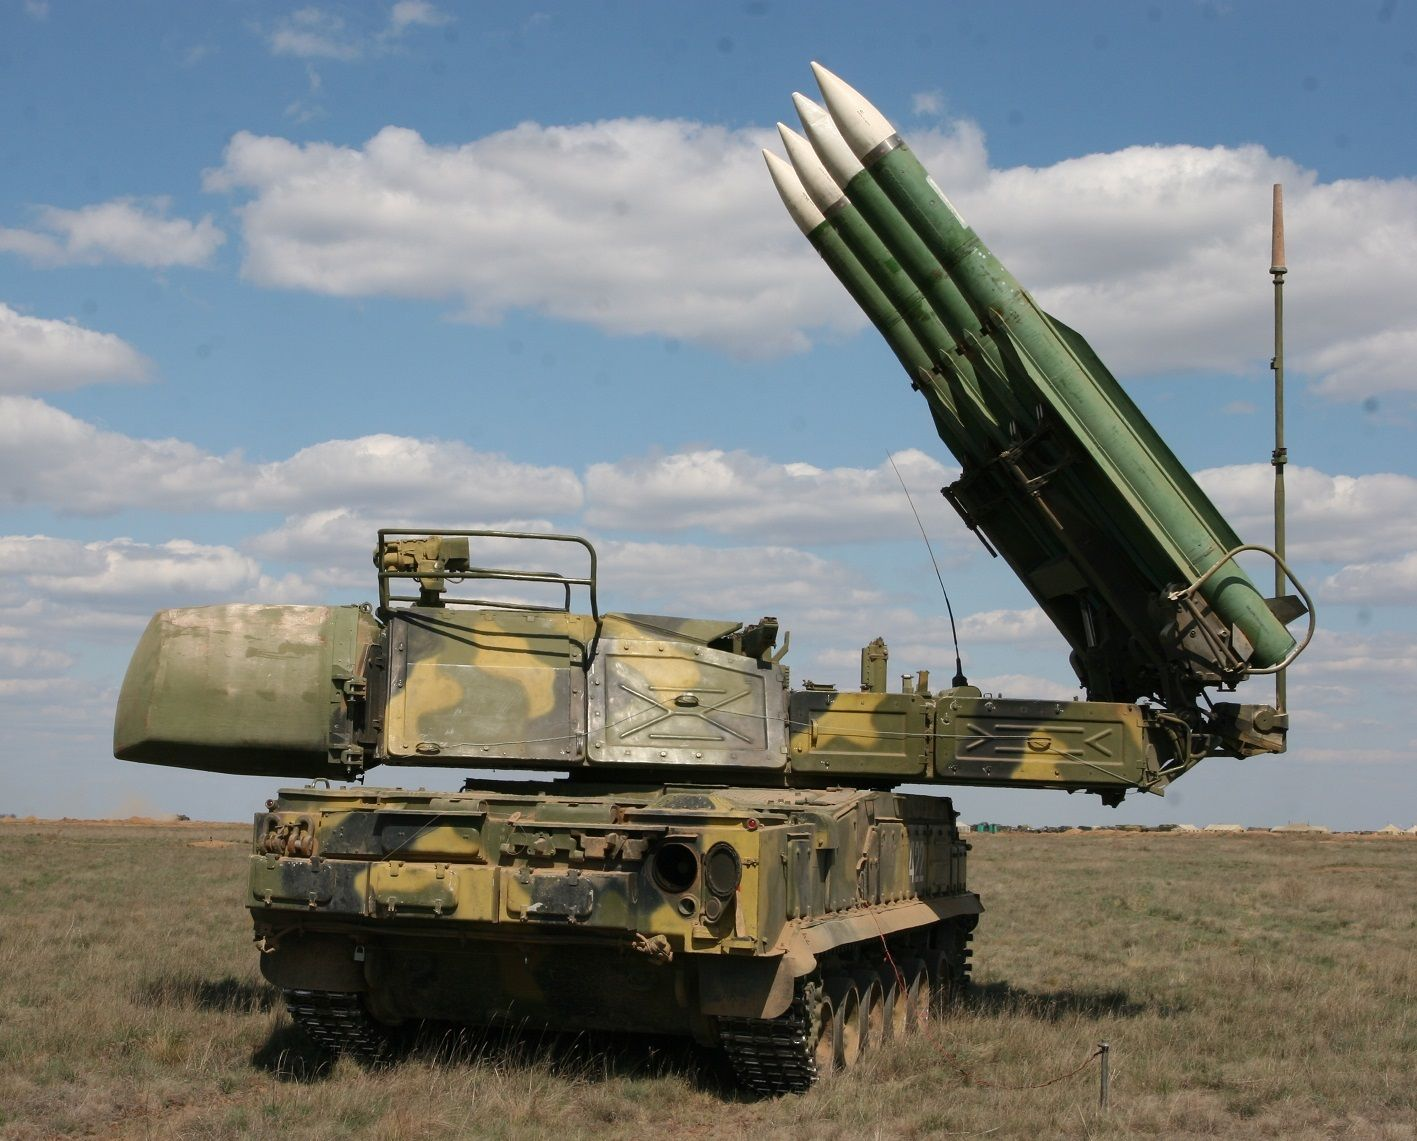 combat units of the Buk-M2 - anti-aircraft missile system. - The Buk missile system is a family of self-propelled, medium-range surface-to-air missile systems developed by the Soviet Union and its successor state, the Russian Federation, and designed to fight cruise missiles, smart bombs, fixed- and rotary-wing aircraft, and unmanned aerial vehicles.